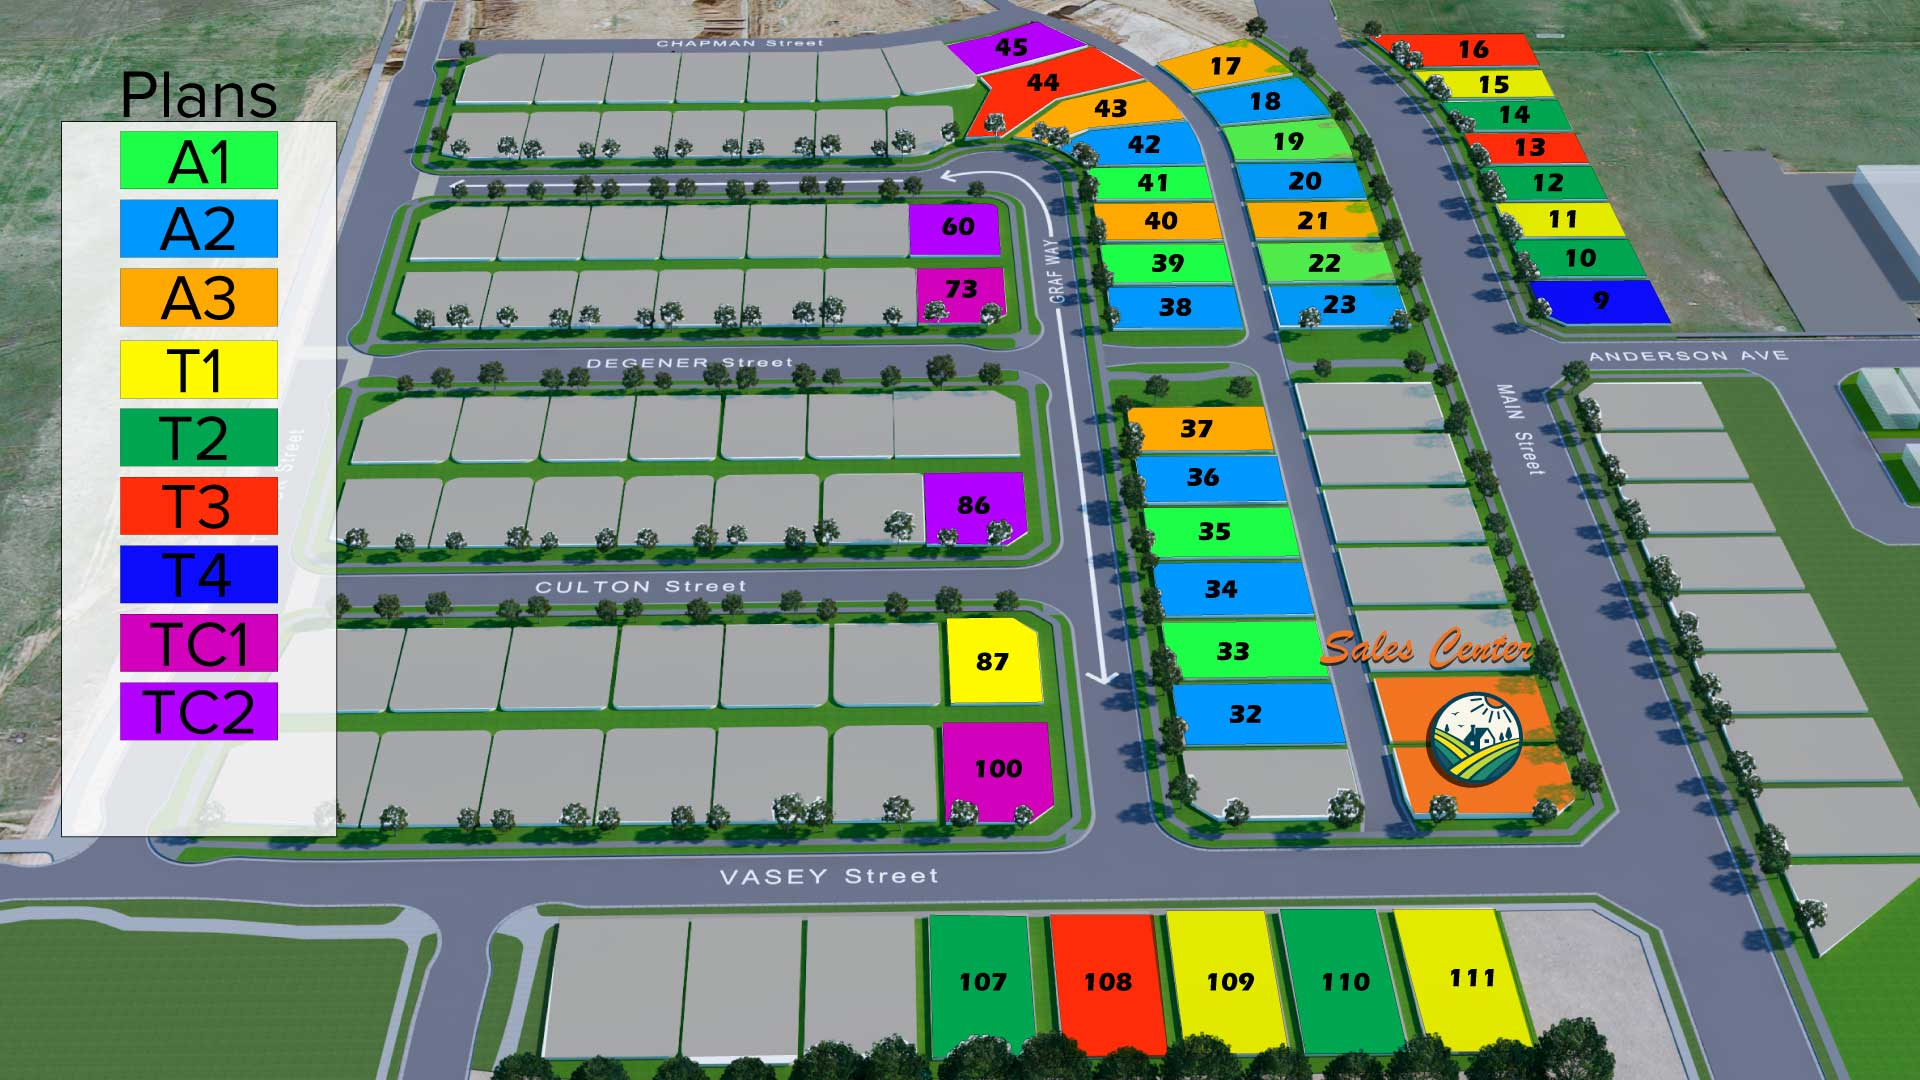 site_map colored 08 08 19 crowne communities data mapping site_map #14